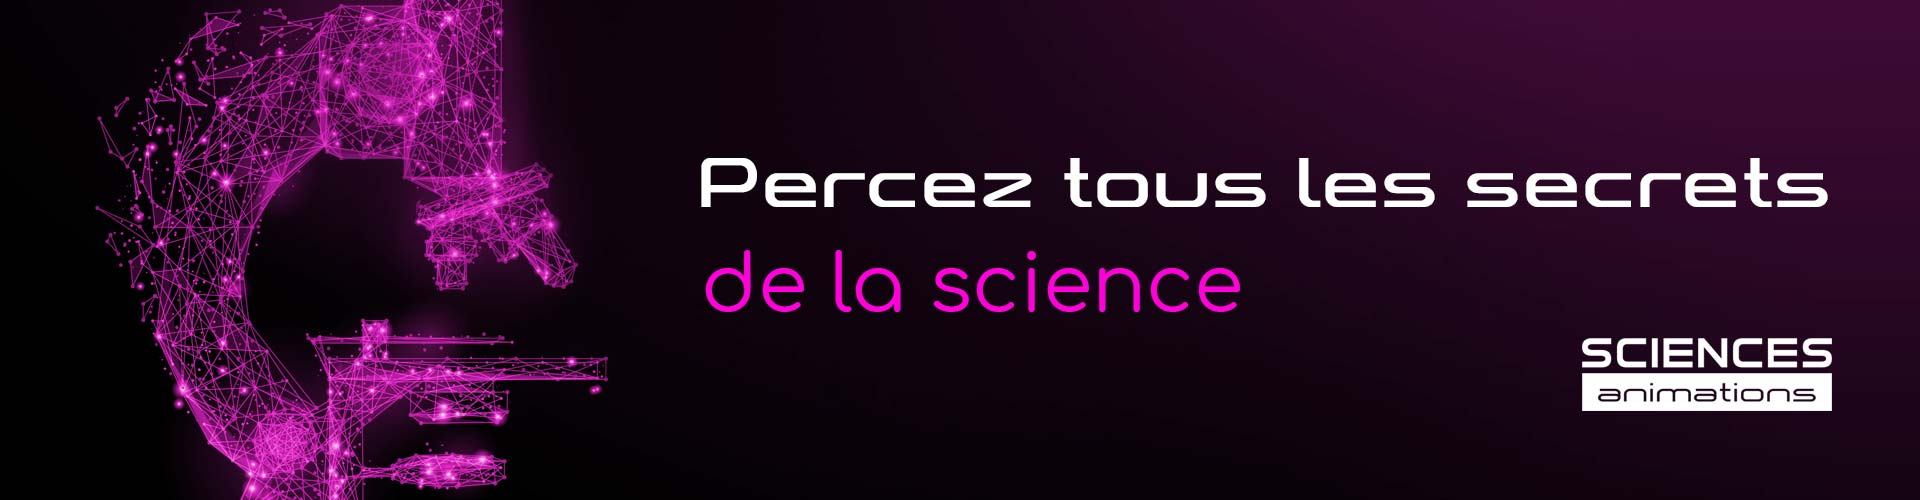 Secrets de la science